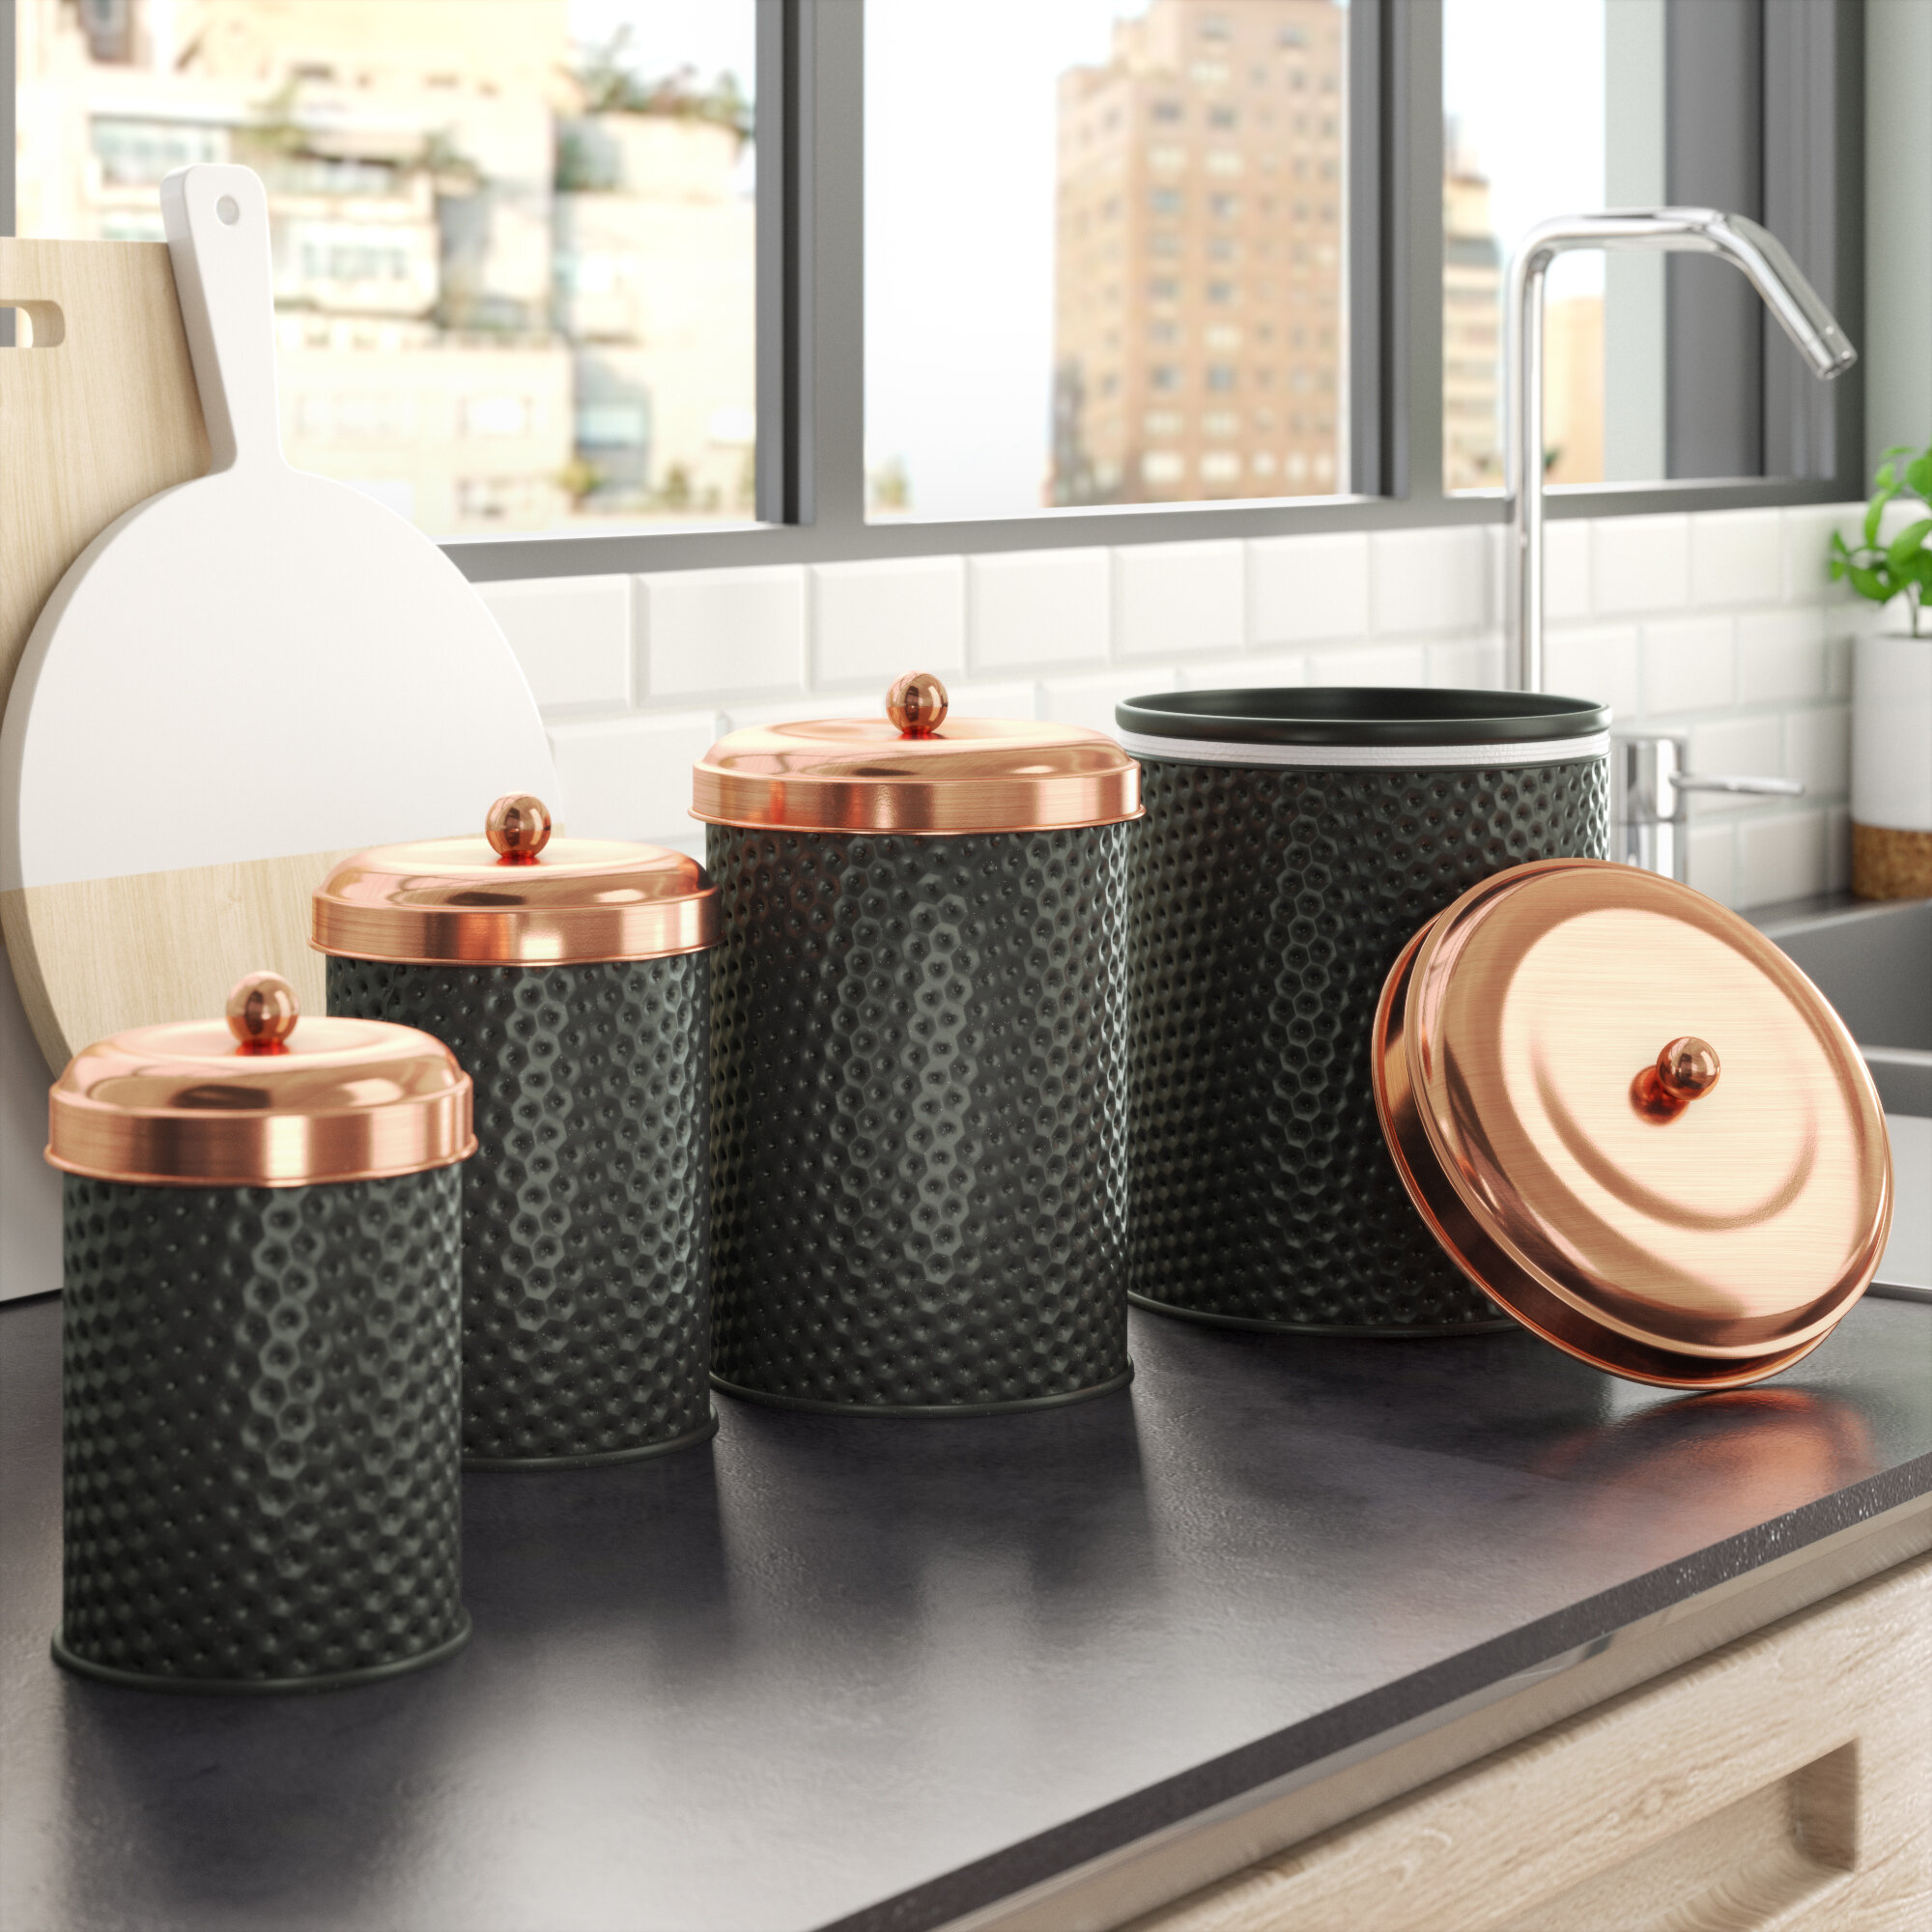 Langley Street Kitchen Canister Set